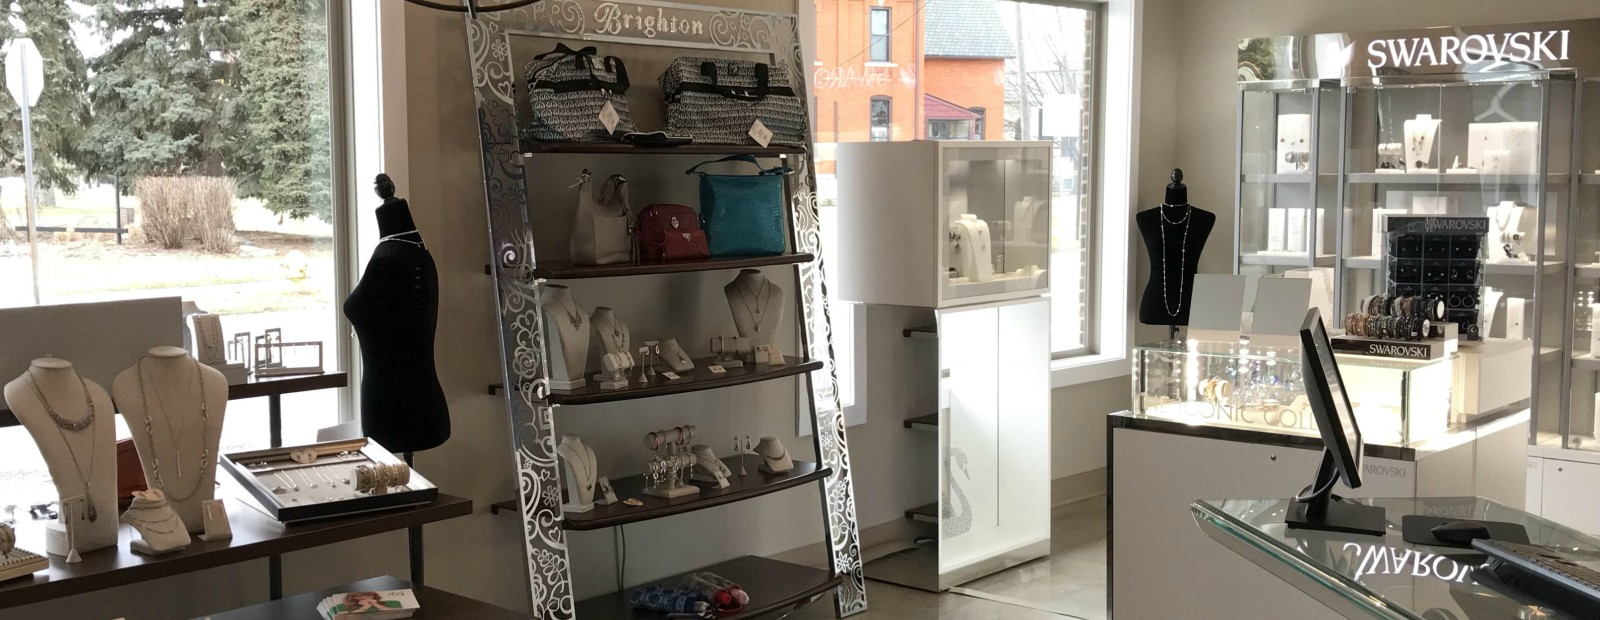 Coughlin Jewelers has opened a boutique shop inside the Inn on Water Street. <span class='image-credits'>Courtesy Tim Coughlin</span>